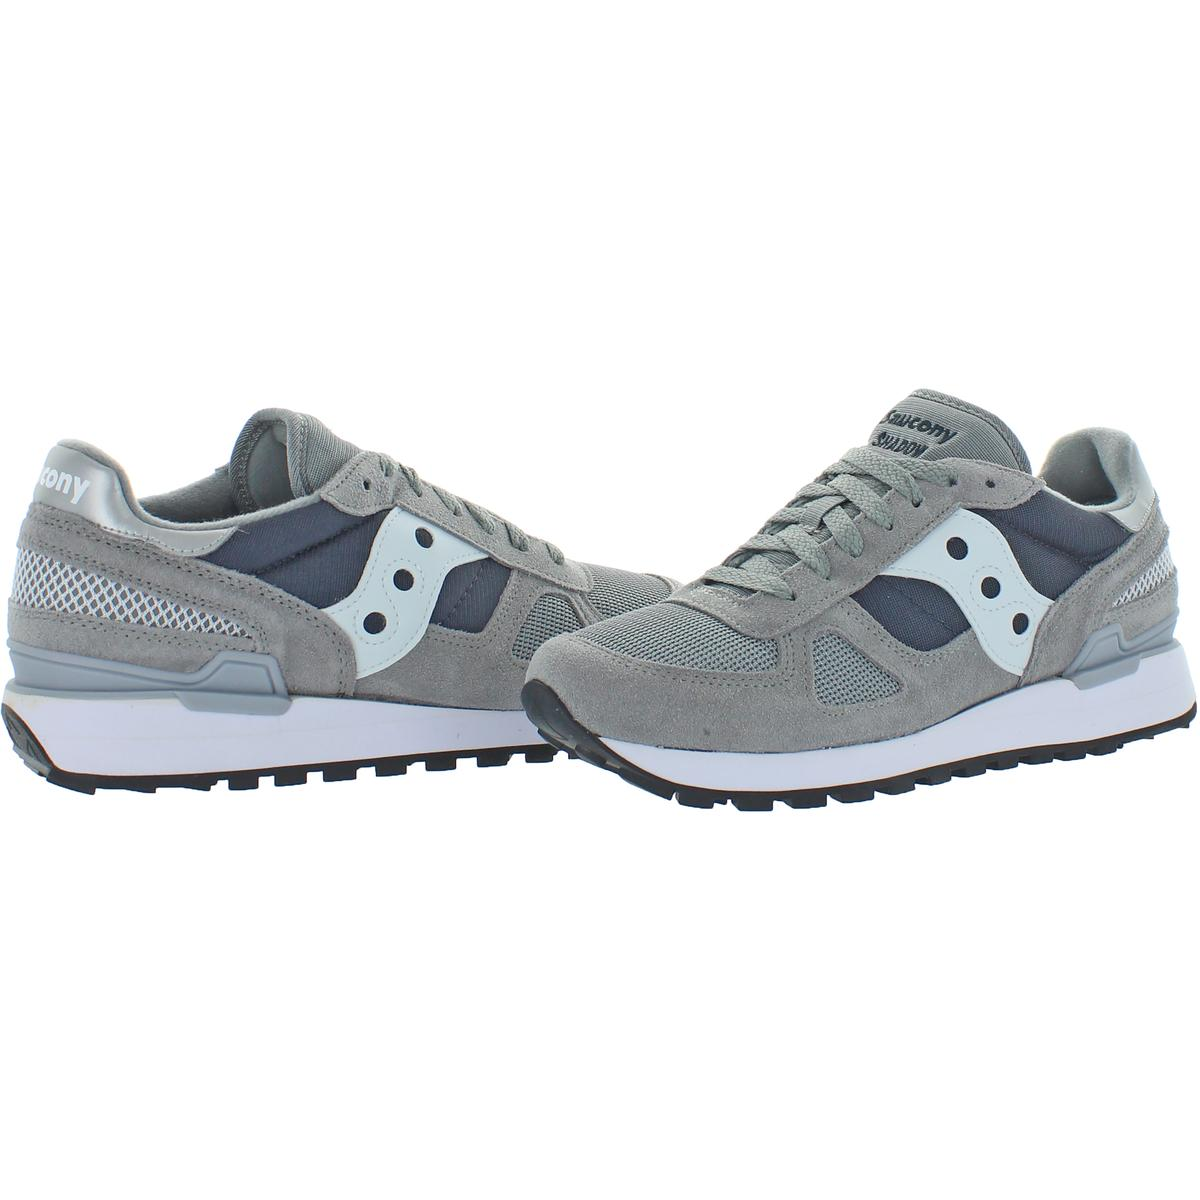 Saucony-Mens-Shadow-Original-Trainers-Suede-Comfort-Sneakers-Shoes-BHFO-0431 miniatuur 19